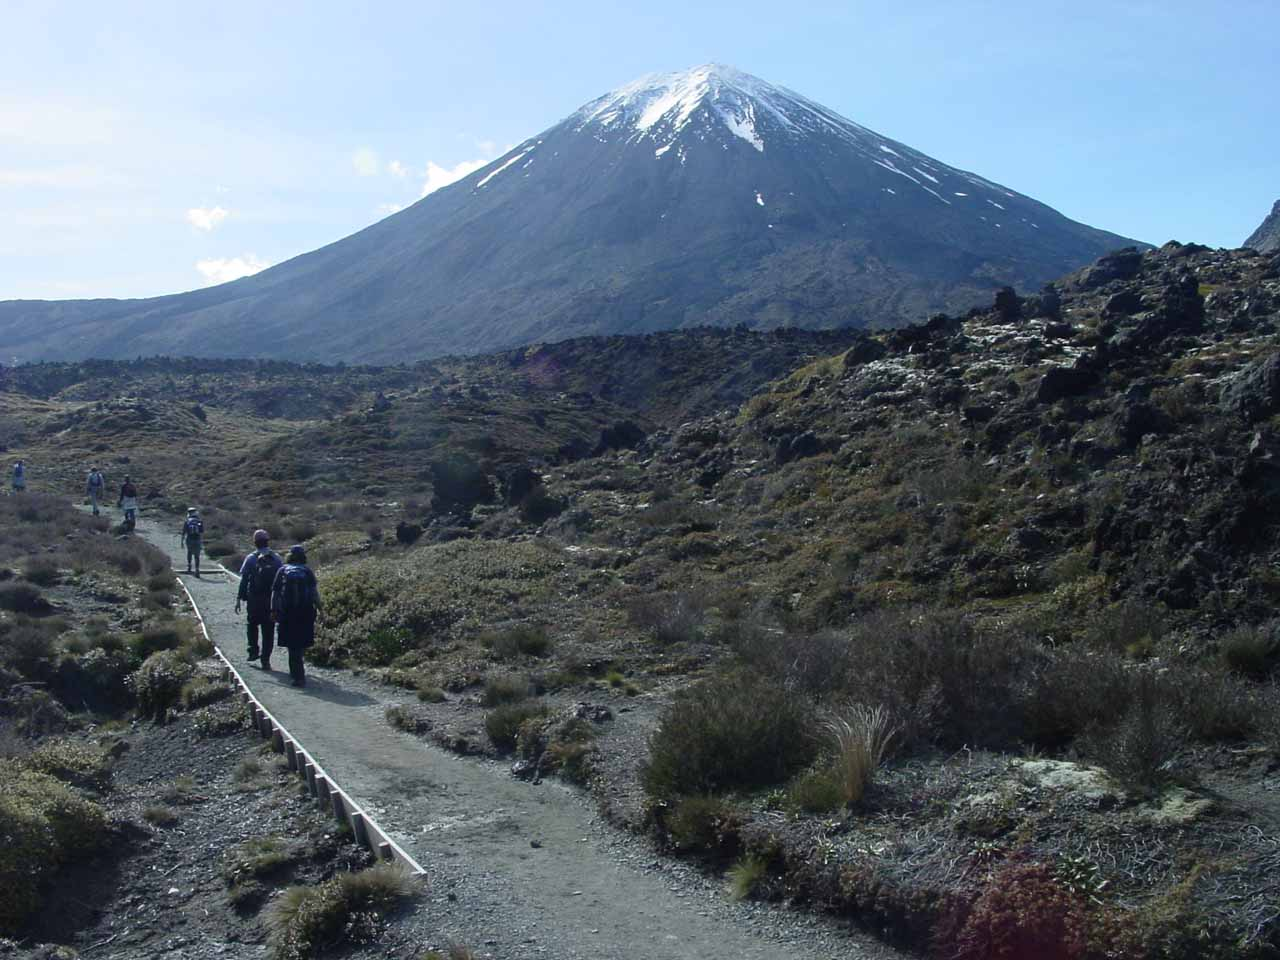 Even though this photo was taken on the Tongariro Crossing two days after Taranaki Falls, I'd imagine this was the type of scenery I would have seen on the Taranaki Falls track with better weather